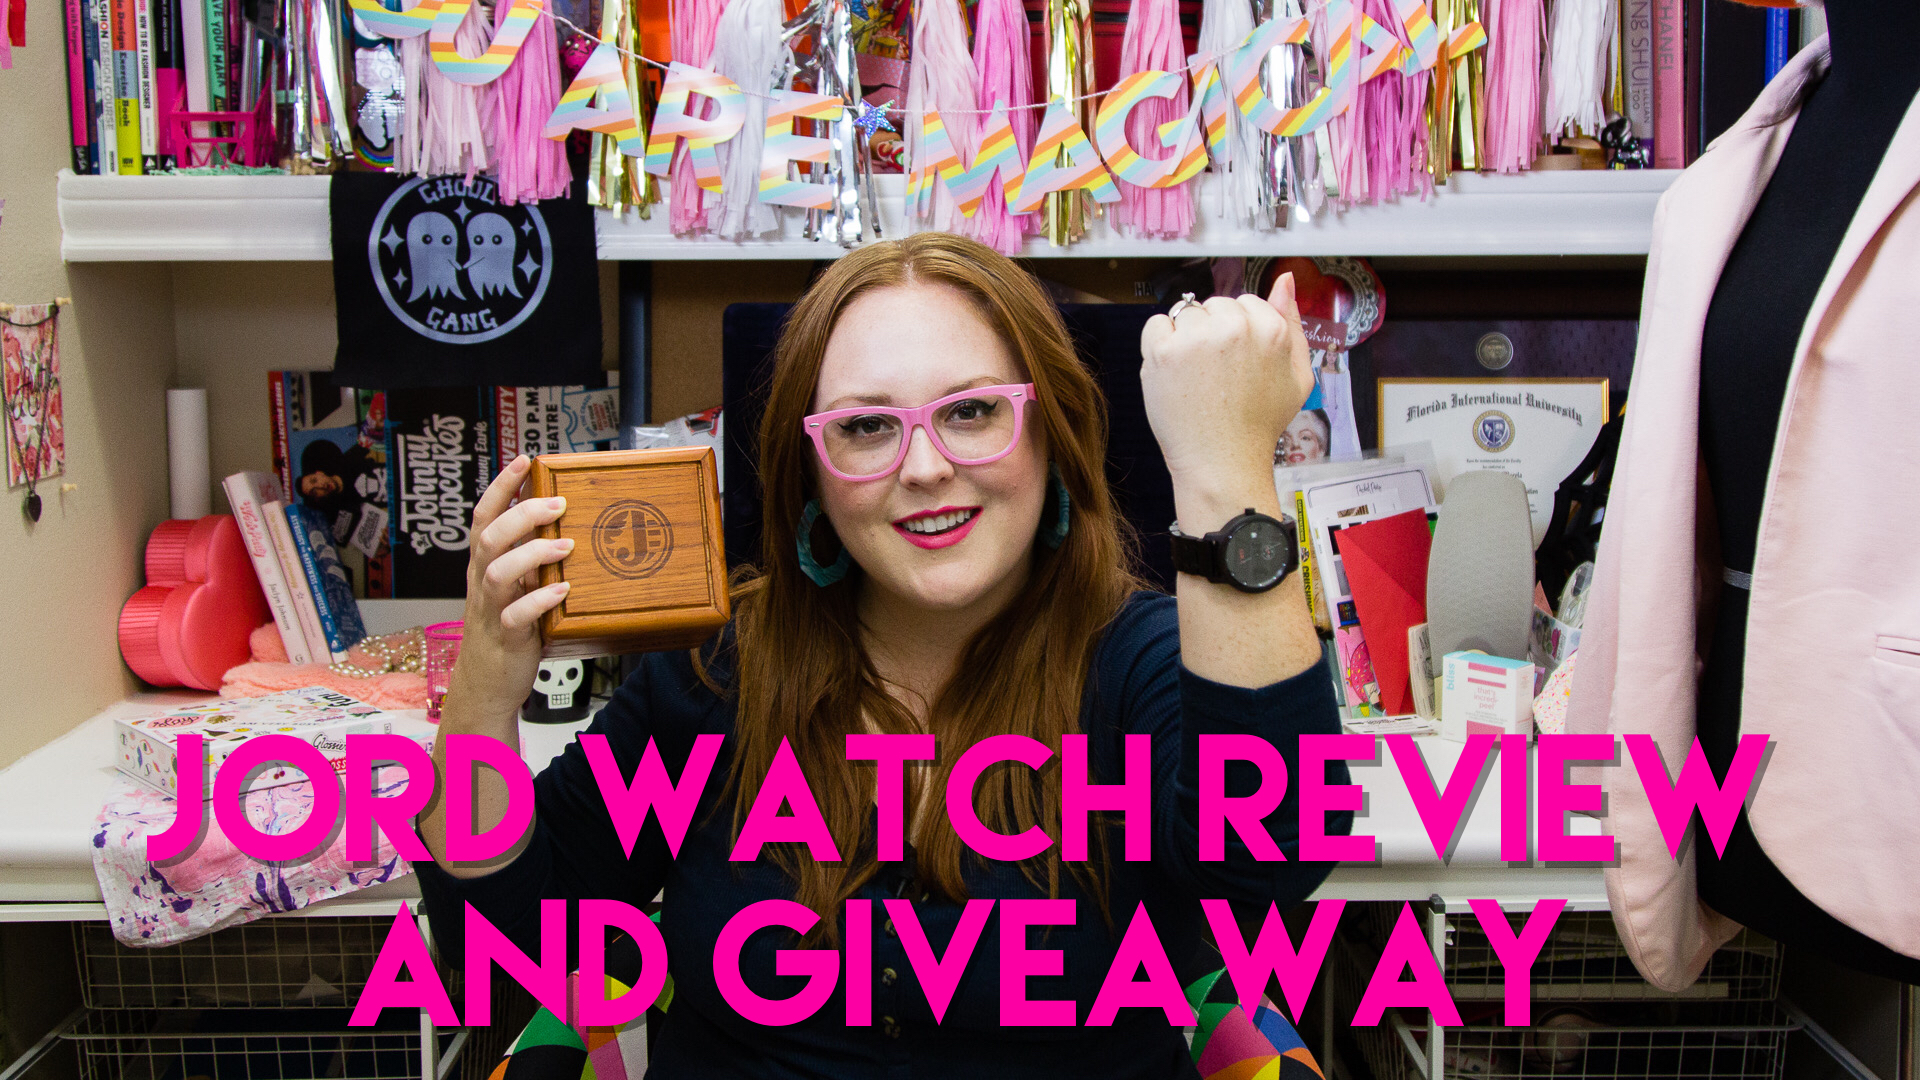 ginger-me-glam-x-jord-watch-review-and-giveaway.jpg